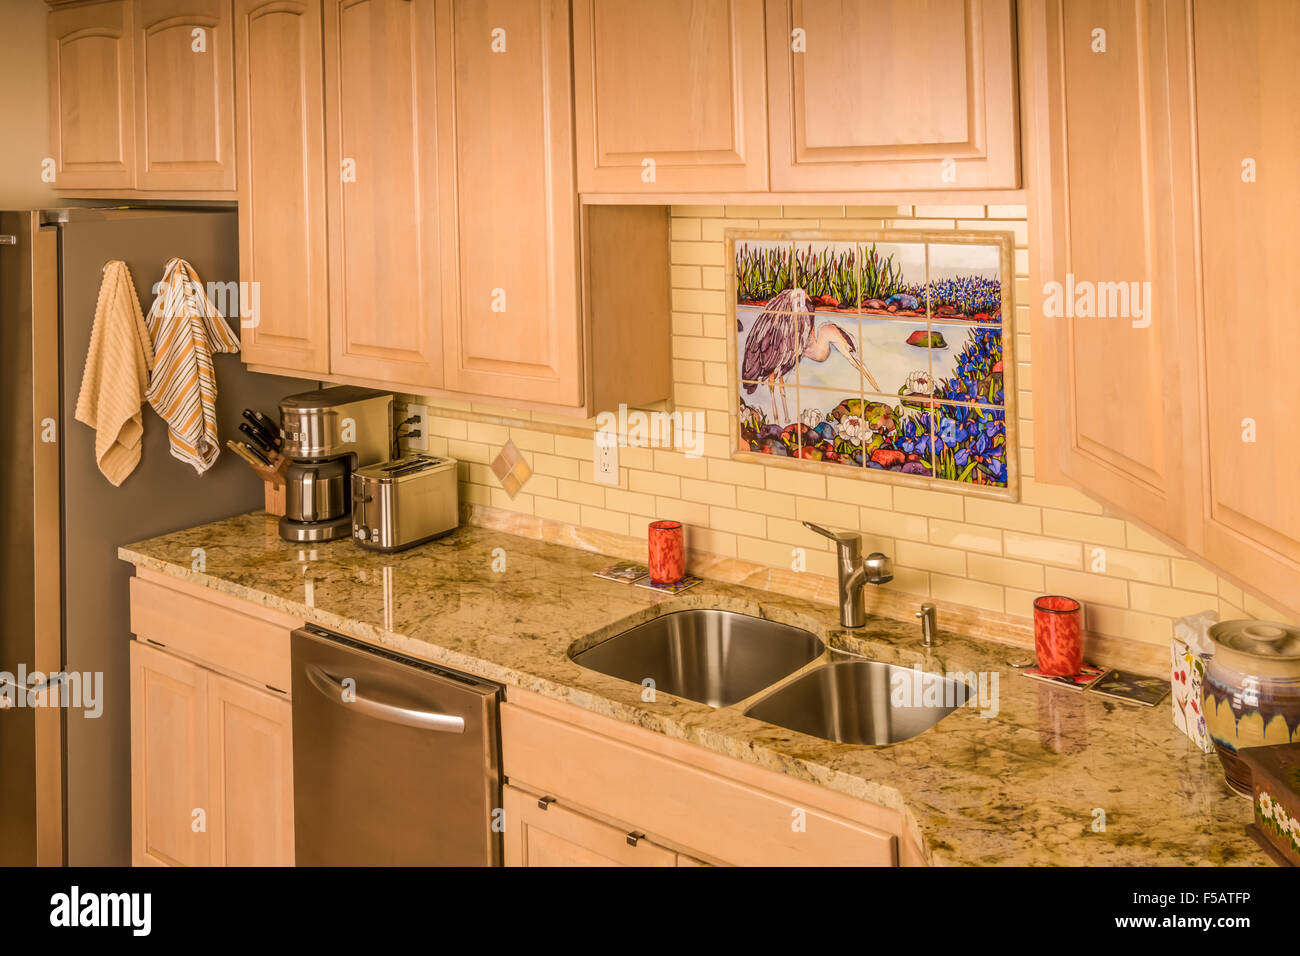 Remodeled kitchen with granite countertop and tile backsplash Stock Photo